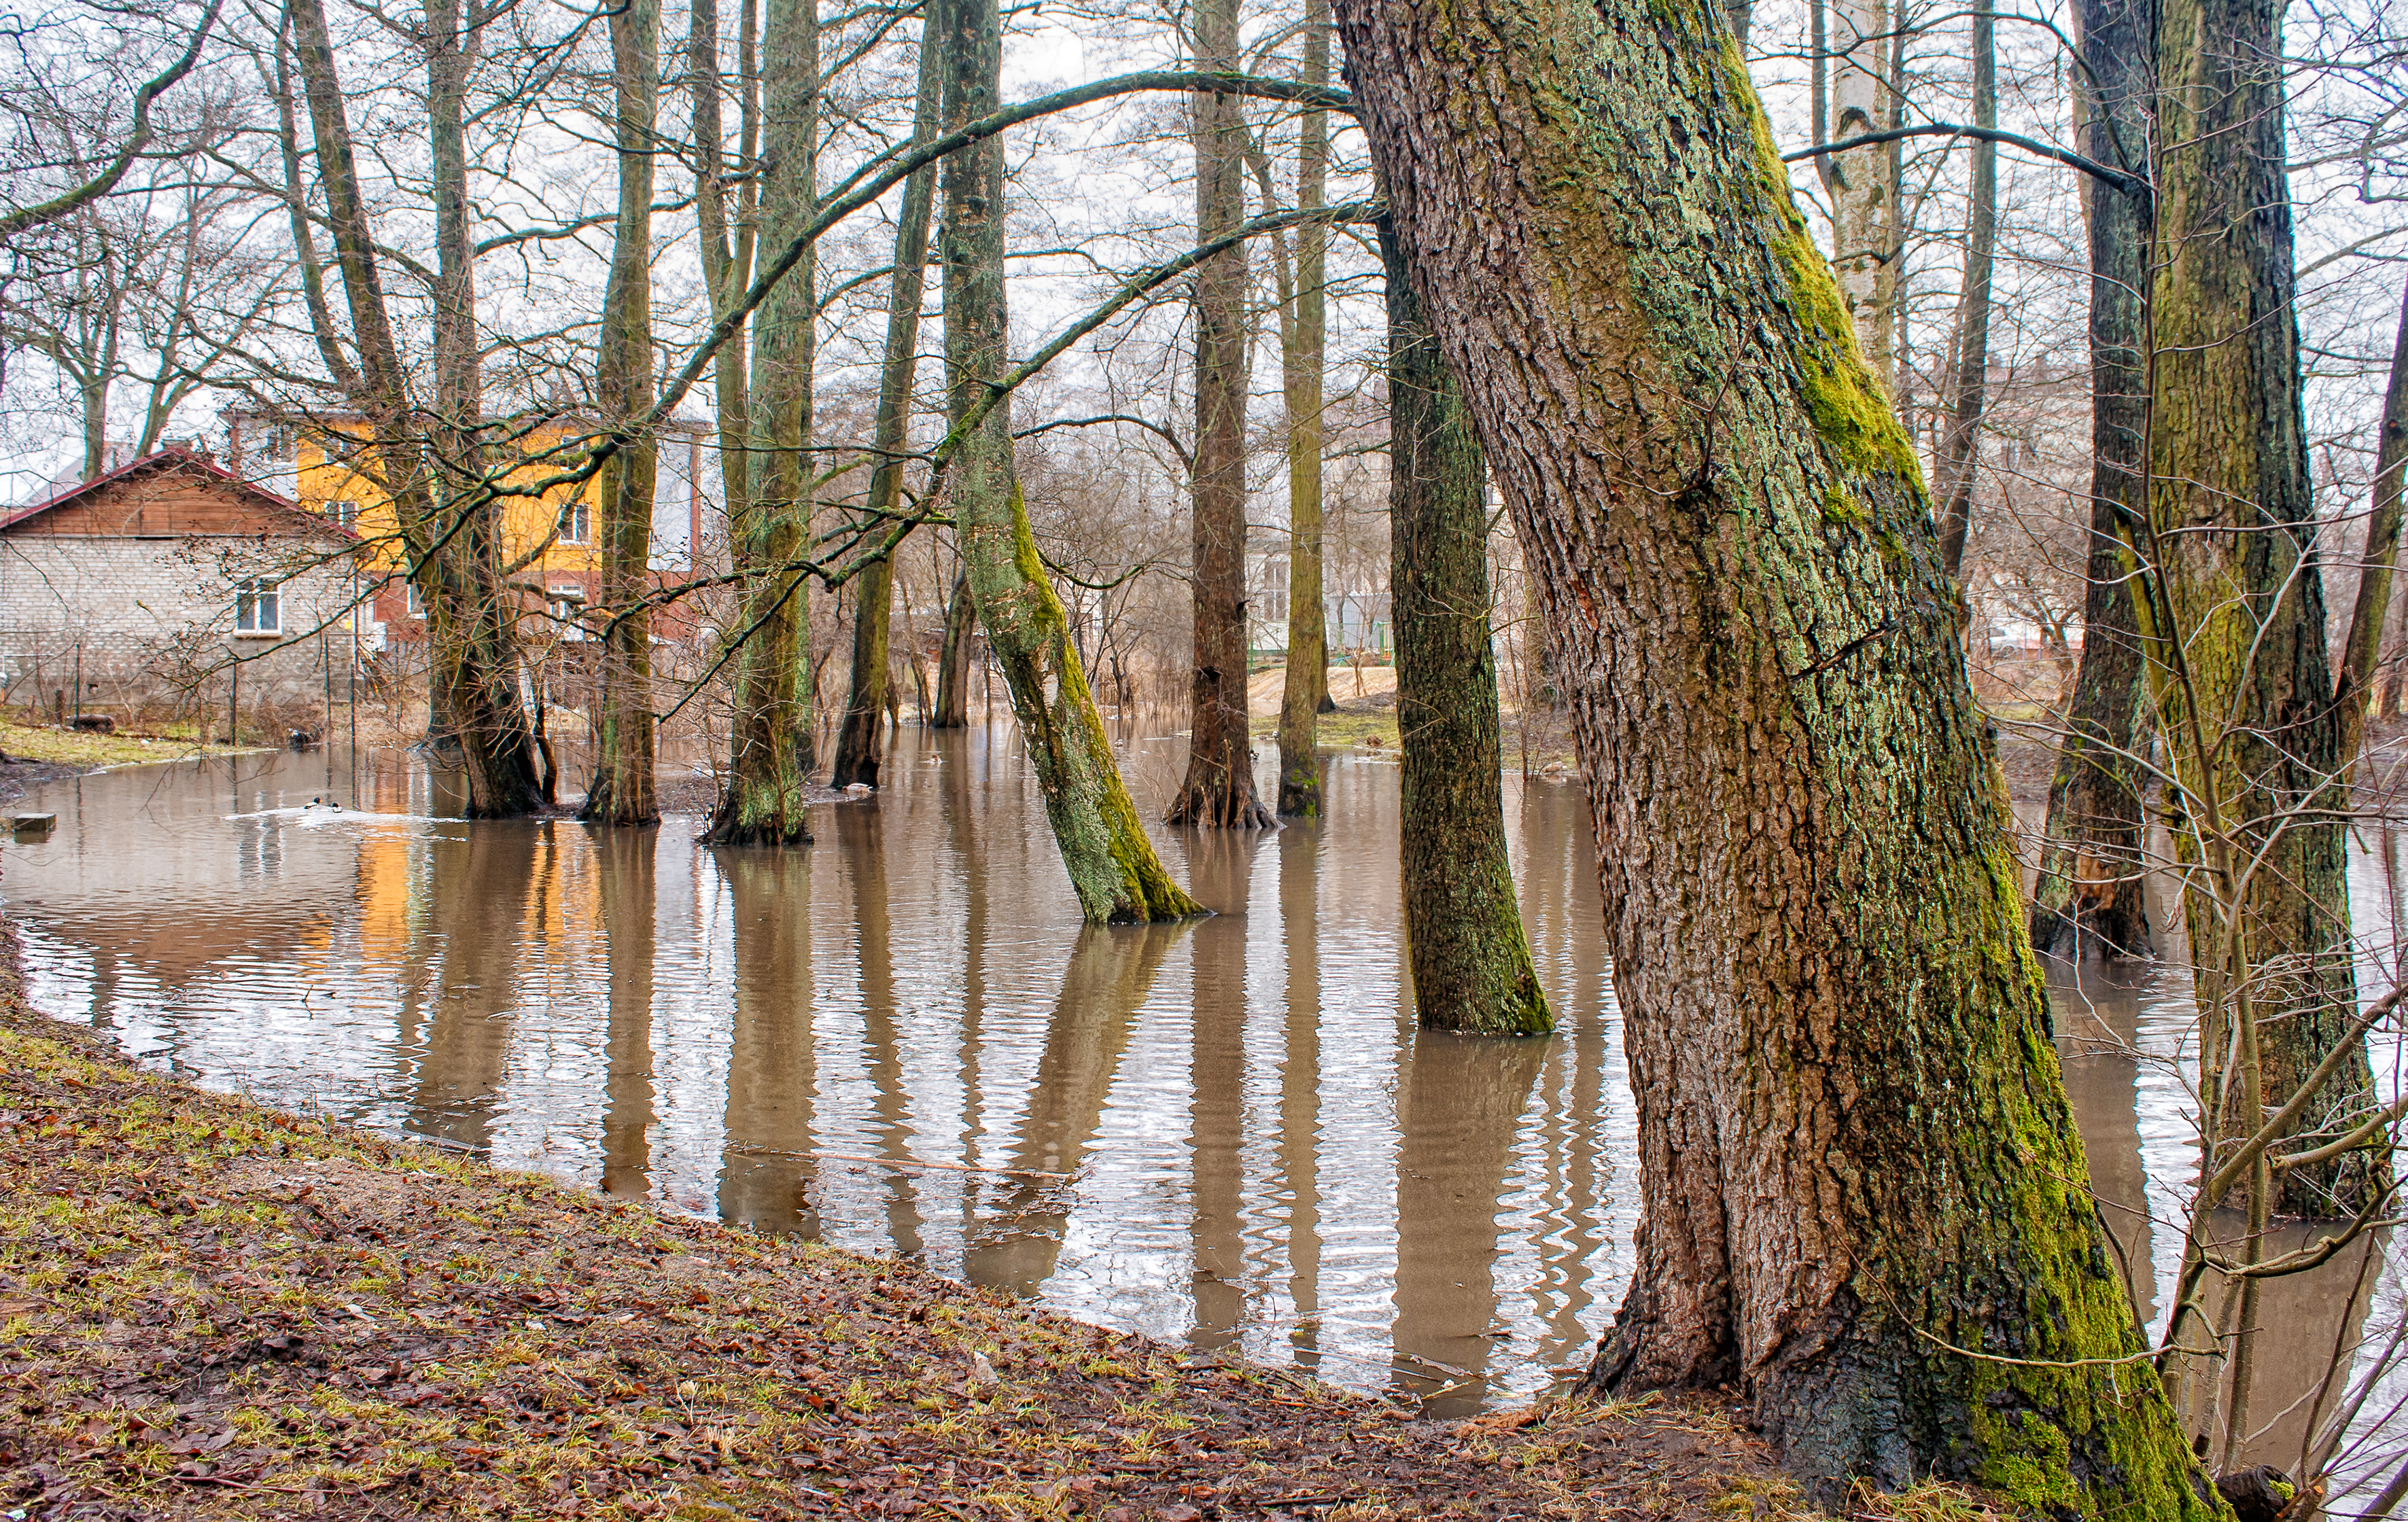 image of a flooded wooded area